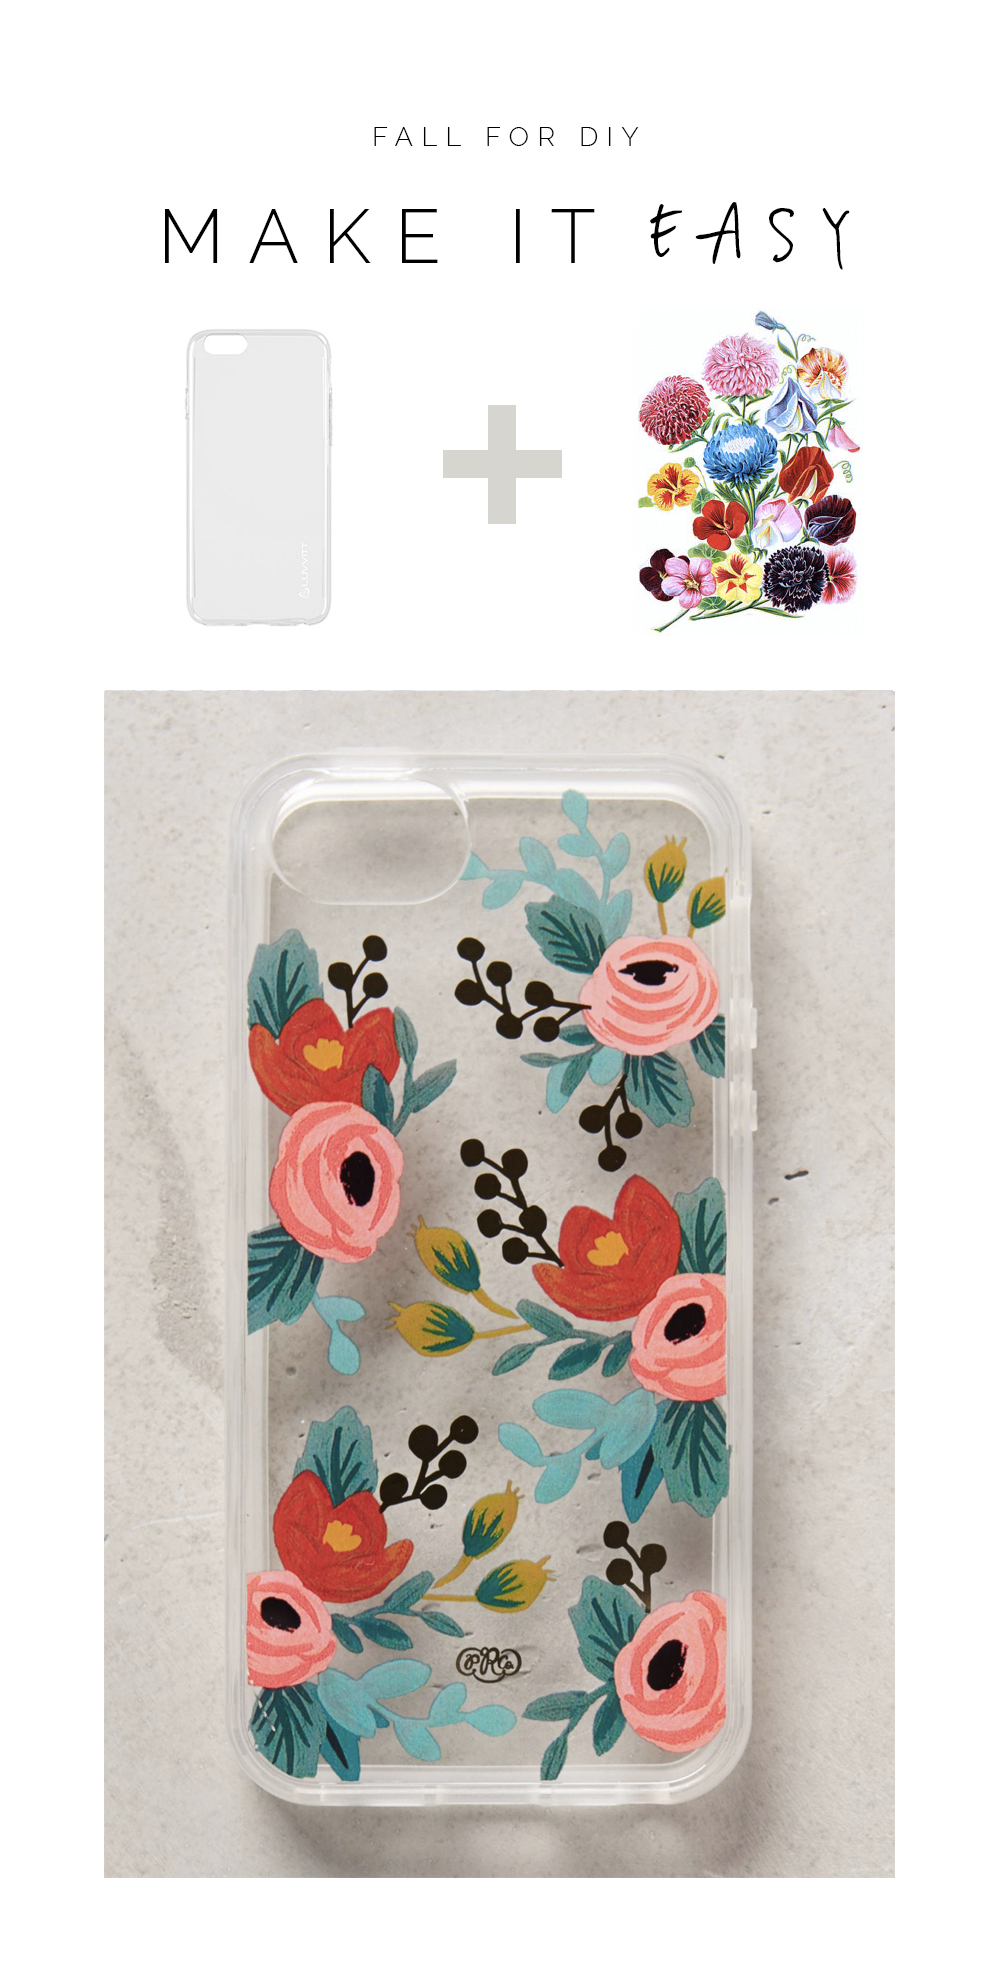 Make it easy floral tattoo phone case for christmas for How to make a homemade phone case